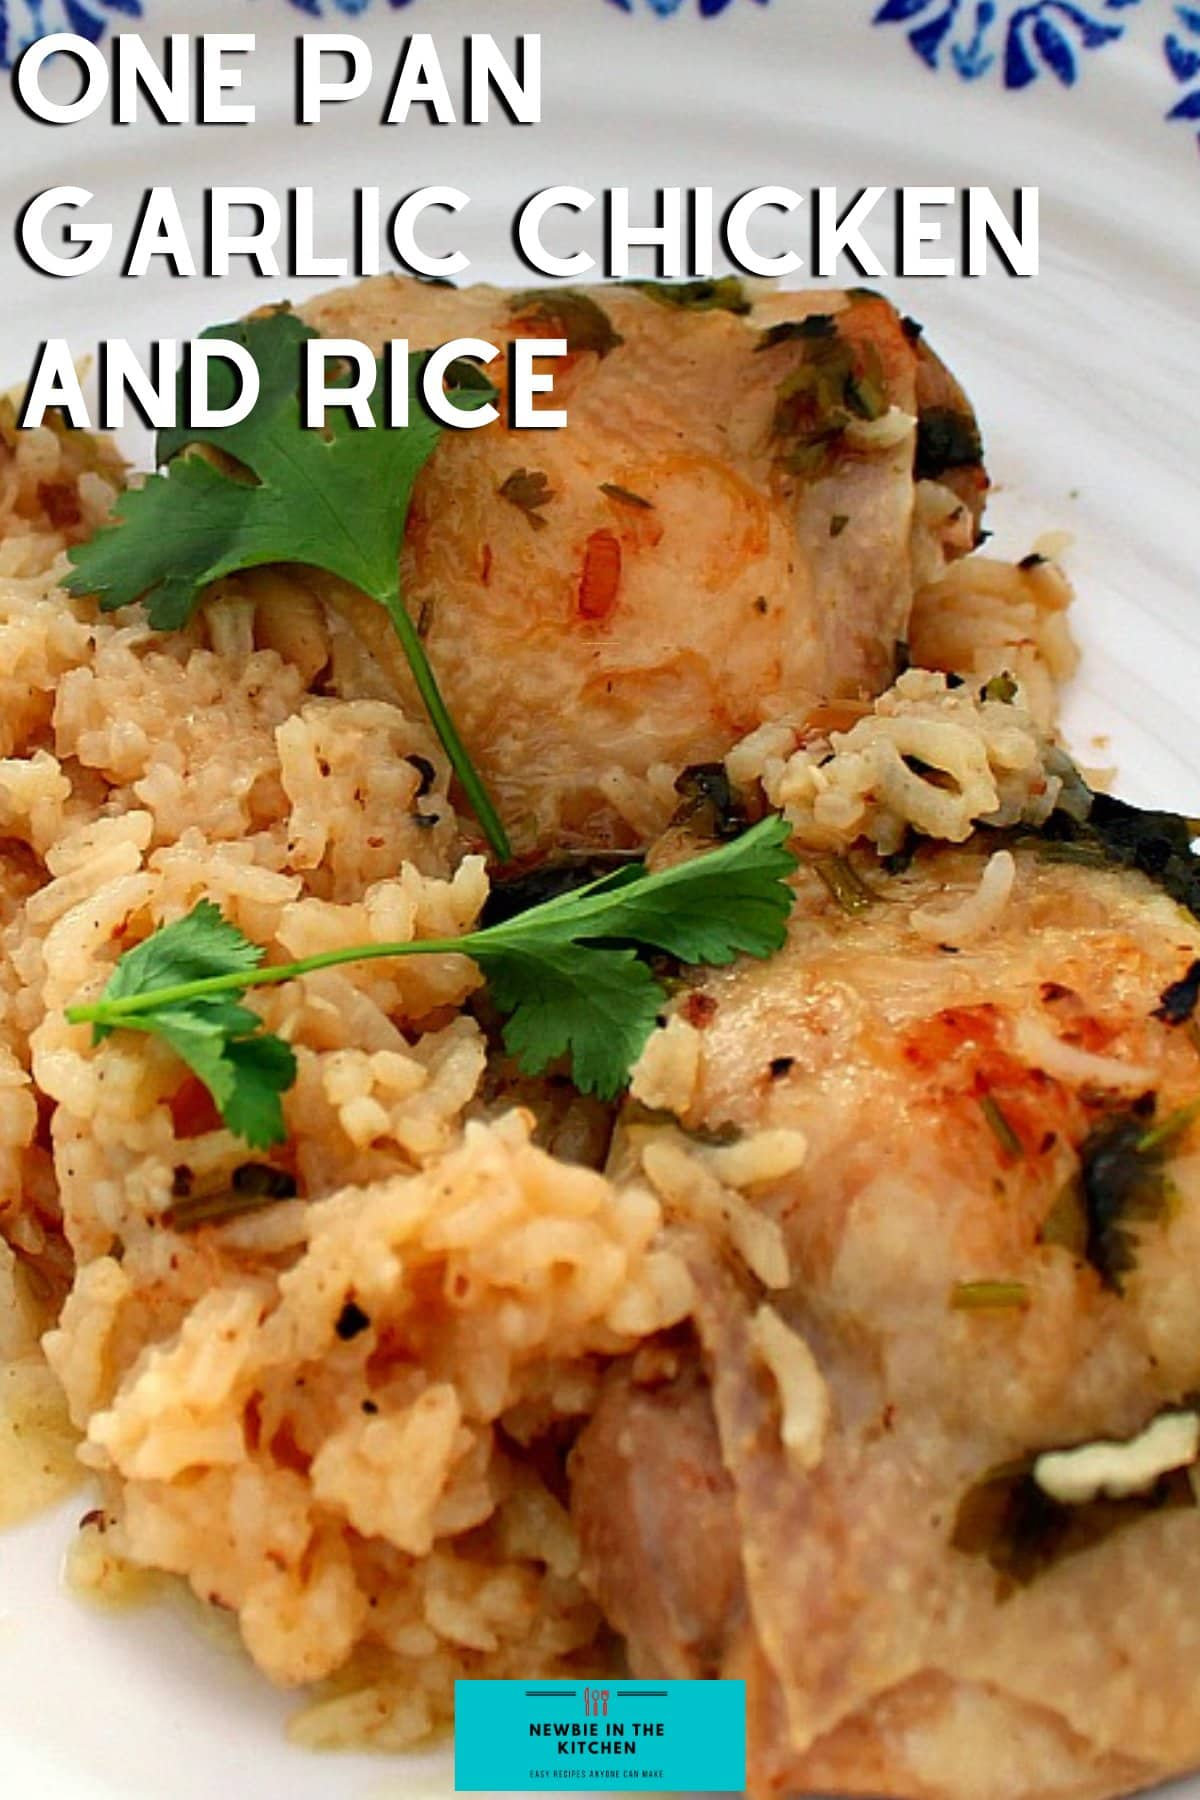 One Pan Garlic Chicken and Rice. An easy dinner recipe with juicy chicken, cooked on the stovetop with flavors of garlic and cilantro